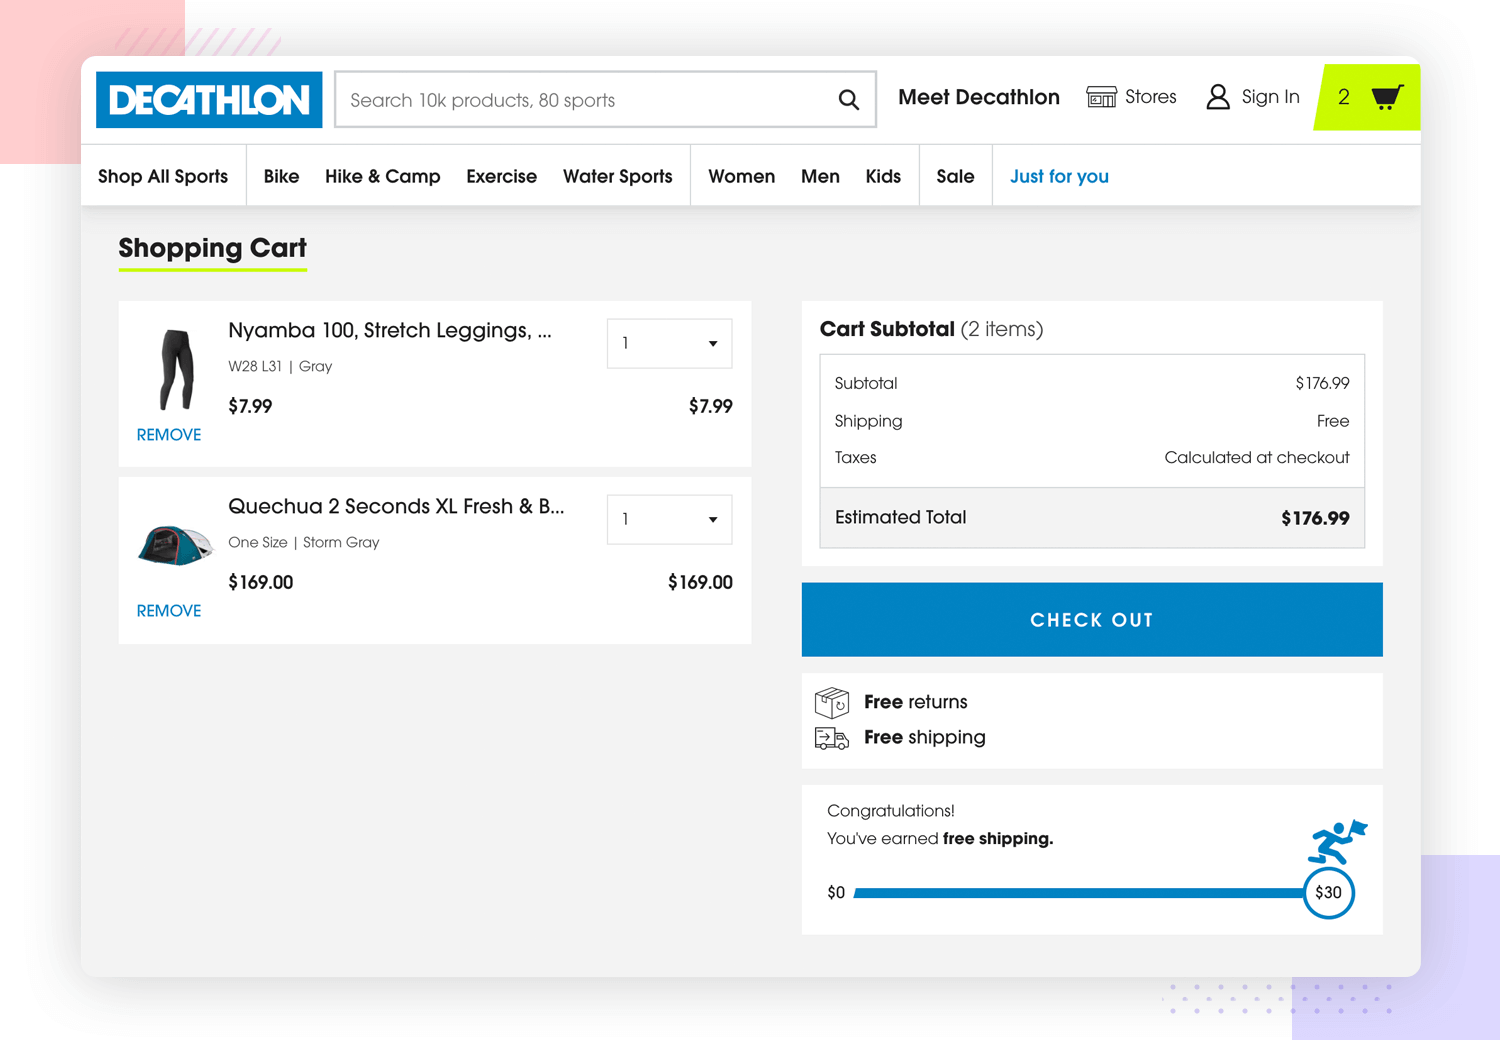 UX principles - user free to navigate while shopping on Decathlon